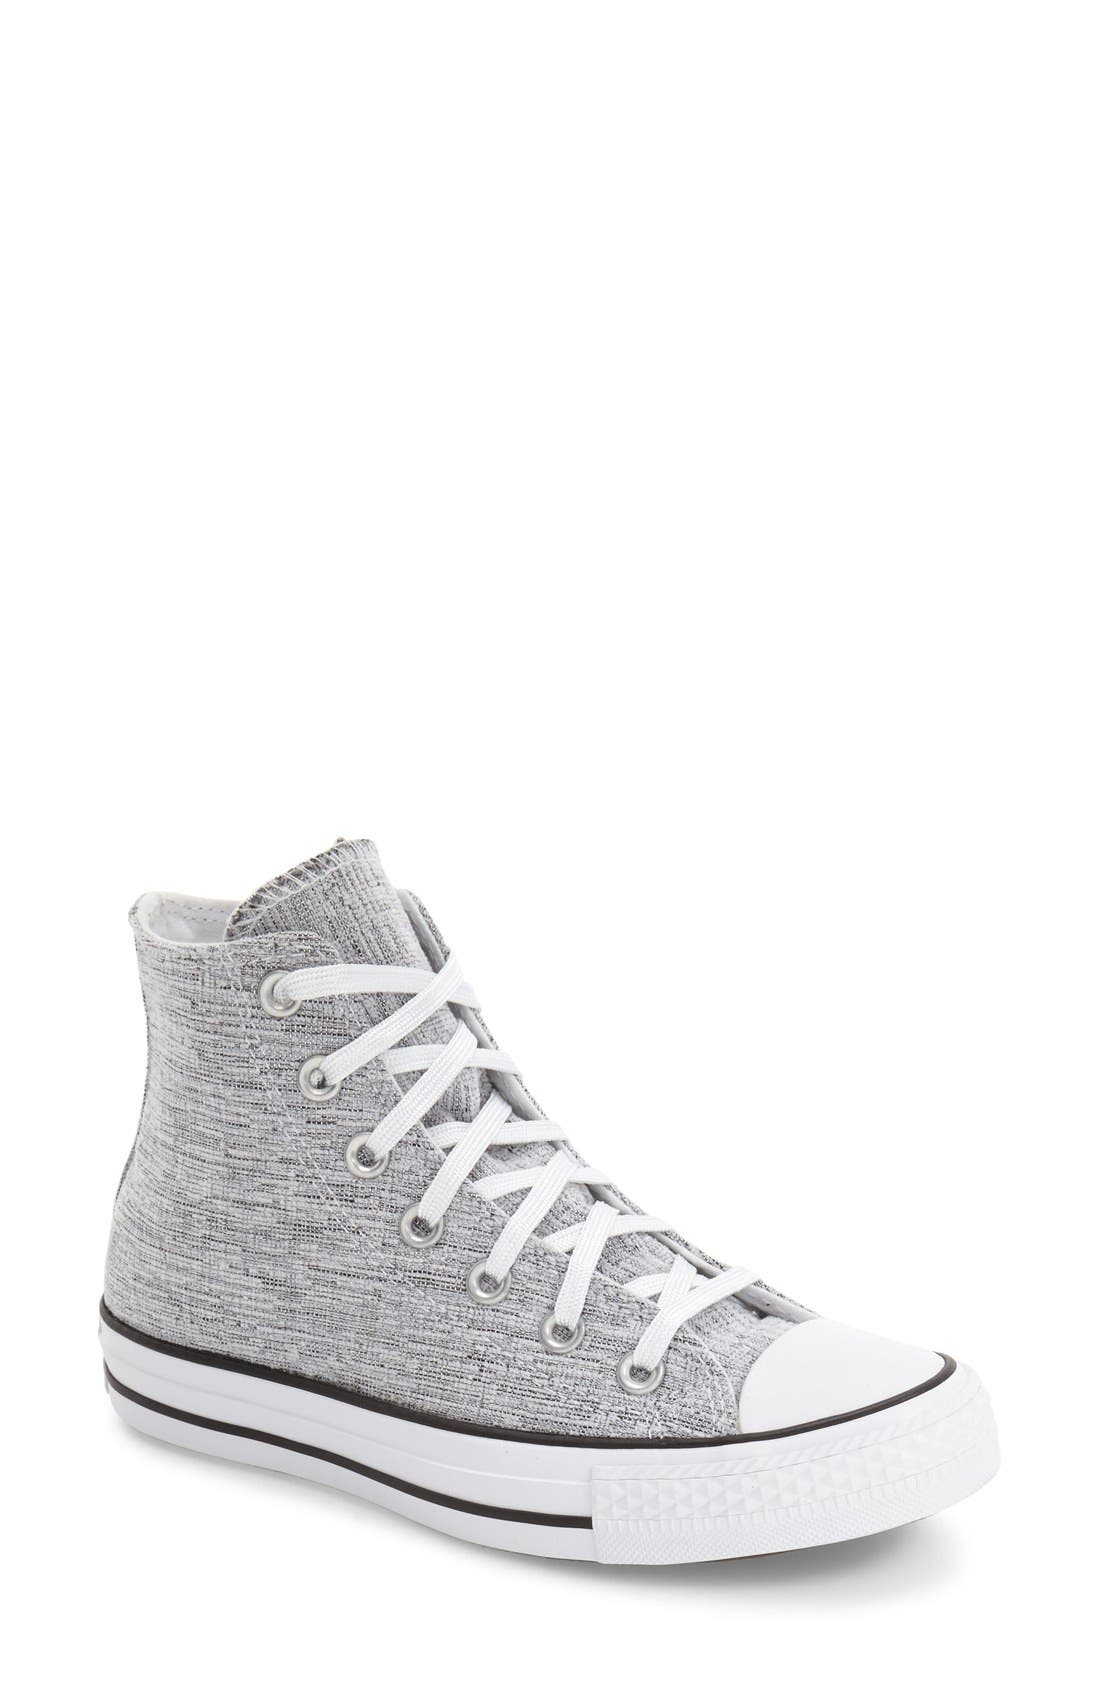 Alternate Image 1 Selected - Converse Chuck Taylor® All Star® Knit High Top Sneaker (Women)